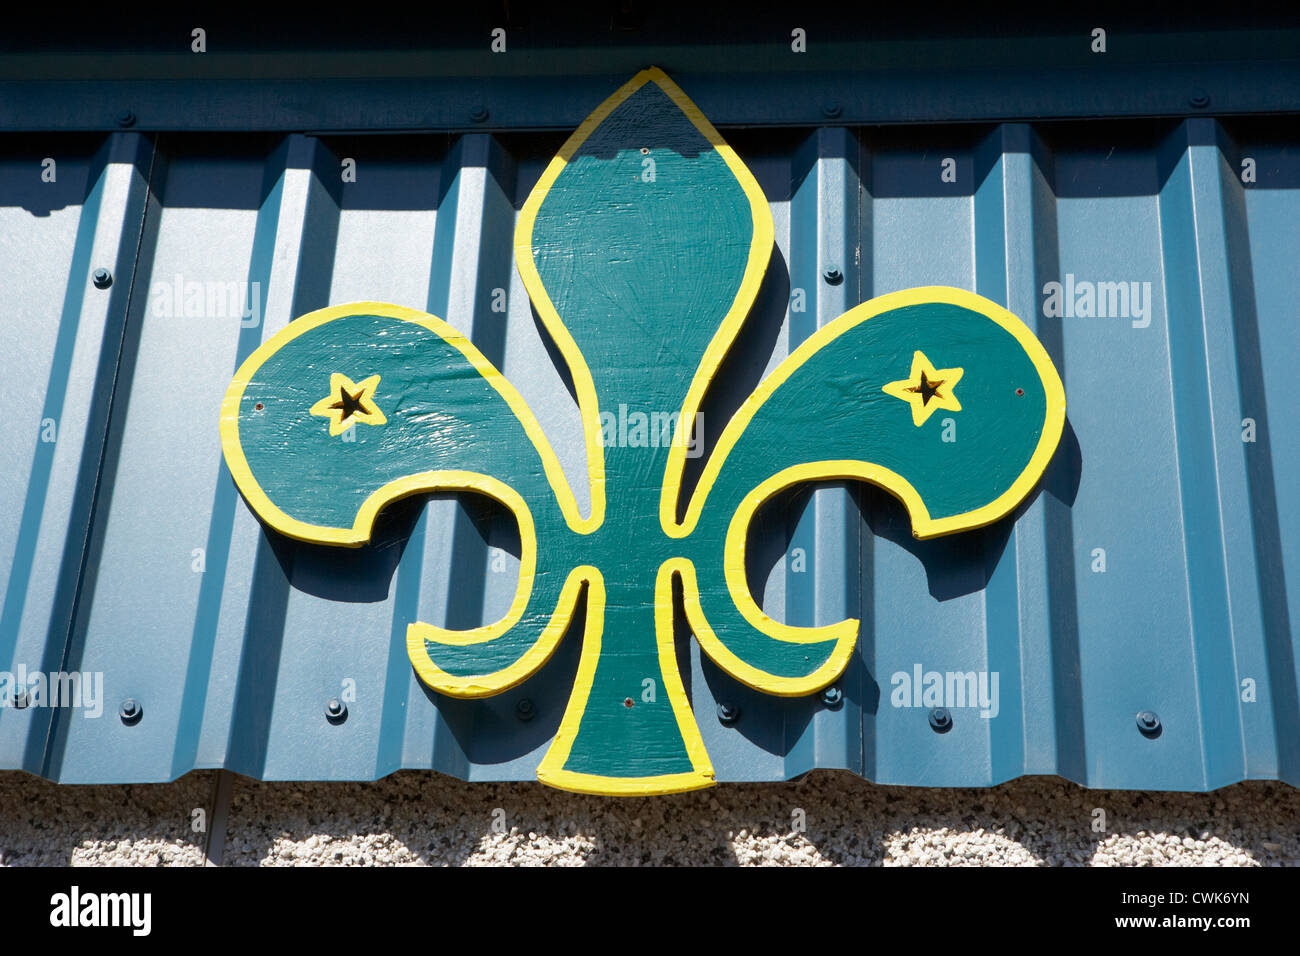 world boy scout emblem on a building in scotland uk united kingdom - Stock Image